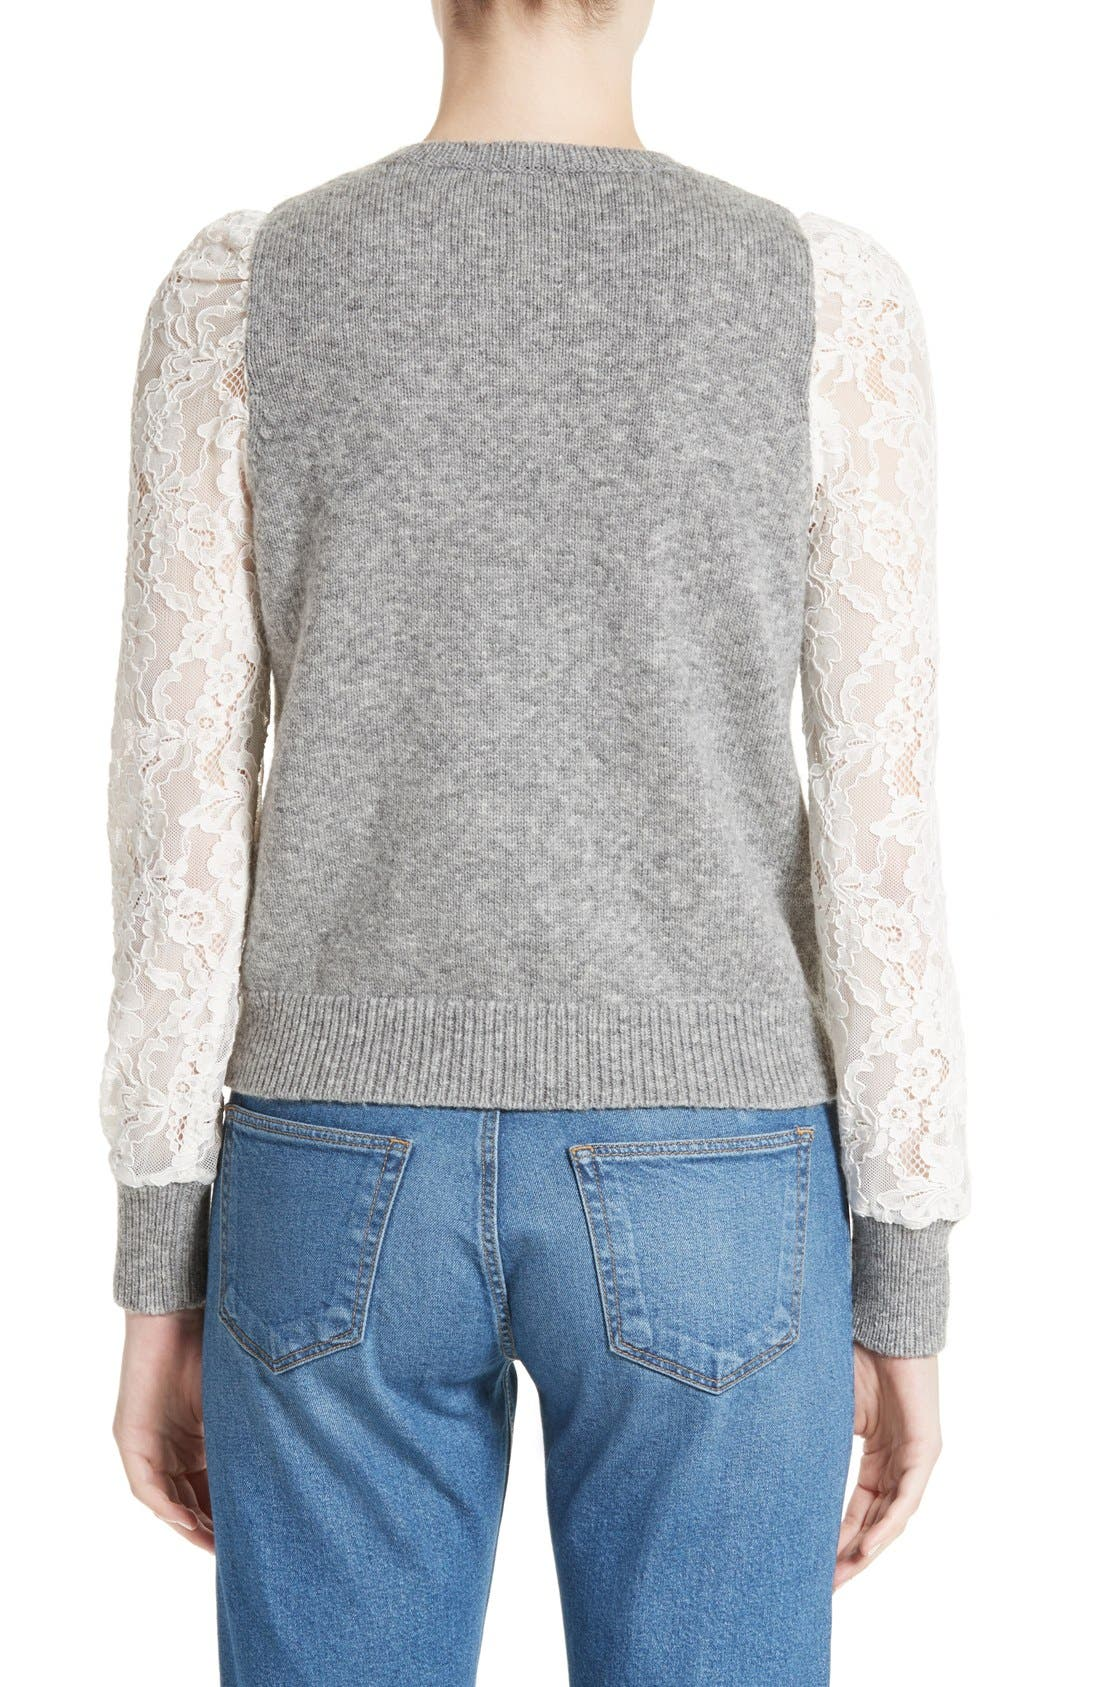 REBECCA TAYLOR,                             Lace Sleeve Sweater,                             Alternate thumbnail 6, color,                             063